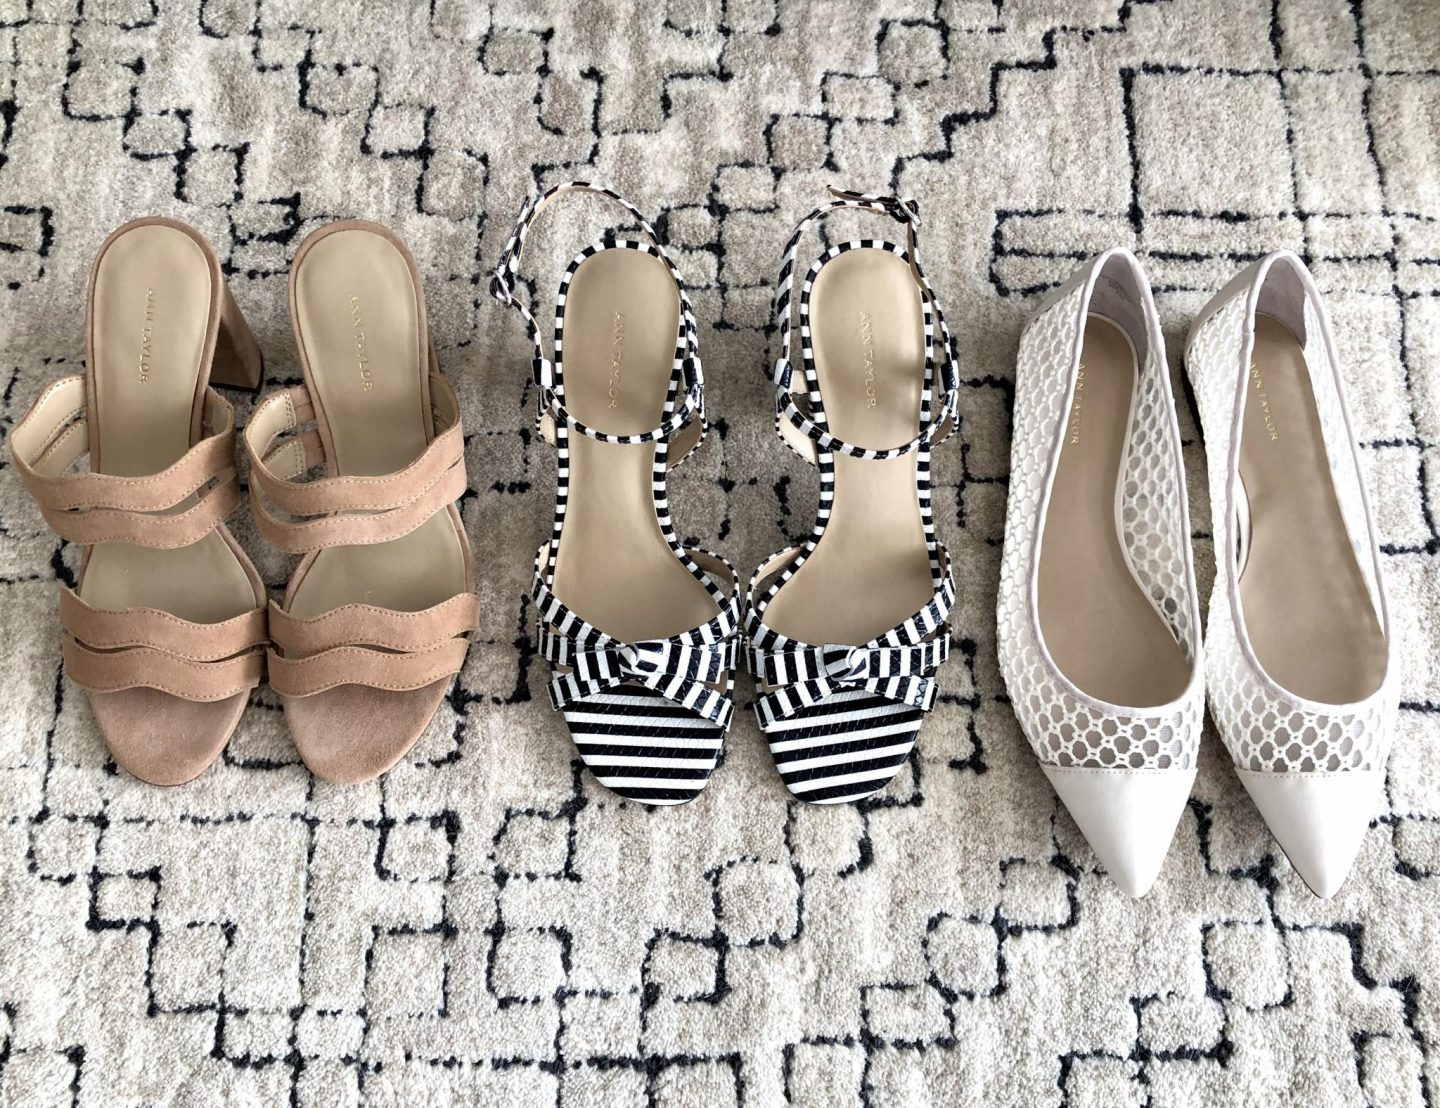 Ann Taylor Spring Shoes - New Arrivals